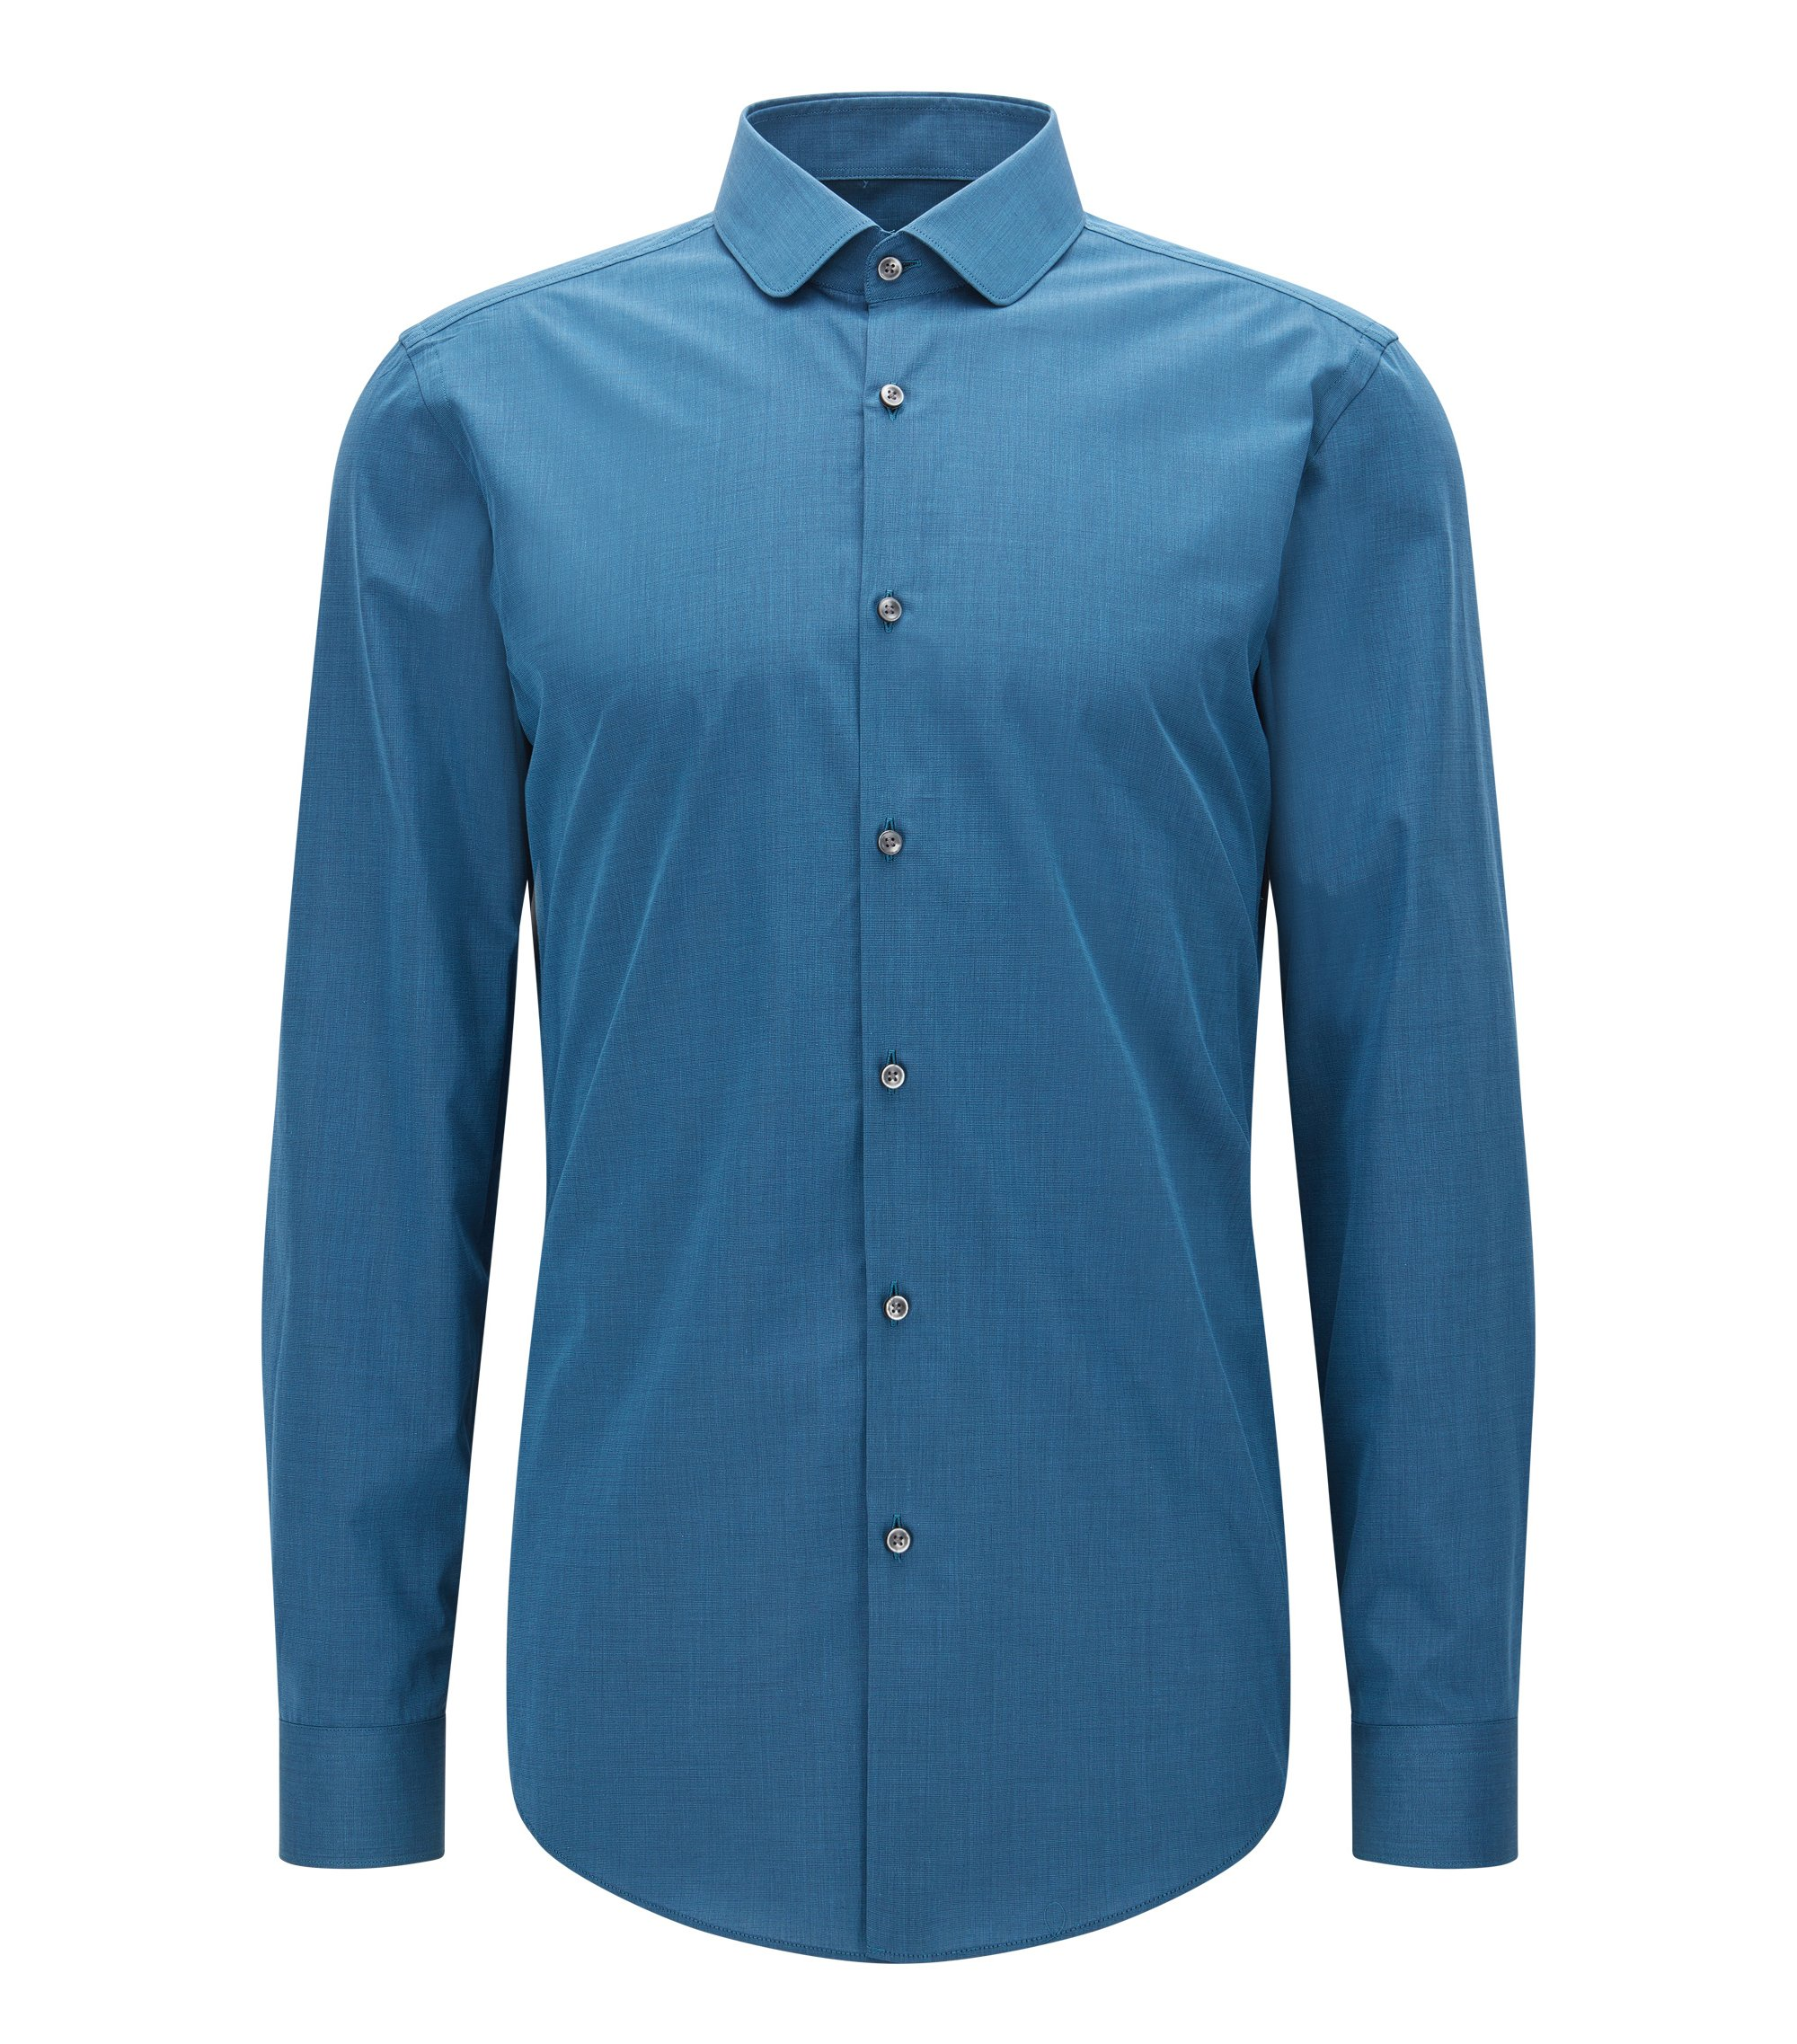 Cotton Poplin Dress Shirt, Slim Fit | Joshua, Turquoise